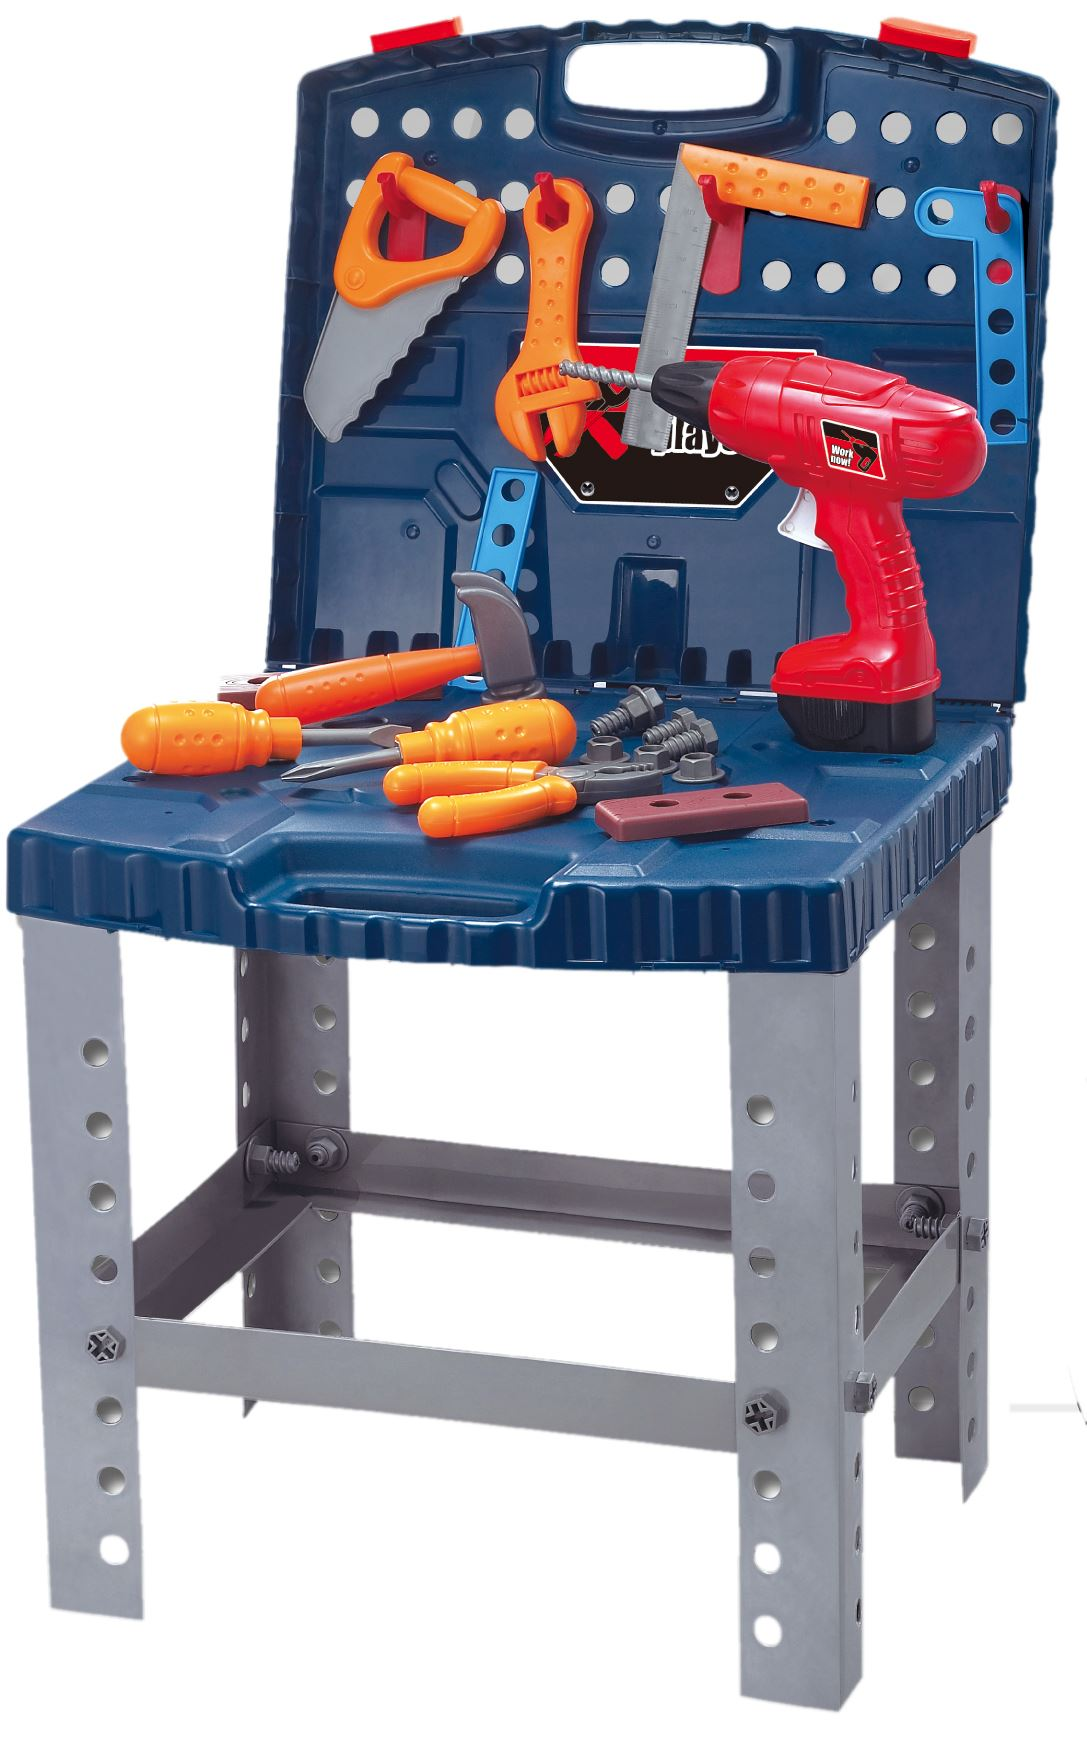 Details About Vinsani Super Tool Kids Boys Work Bench Diy Building Tools Pretend Play Toy